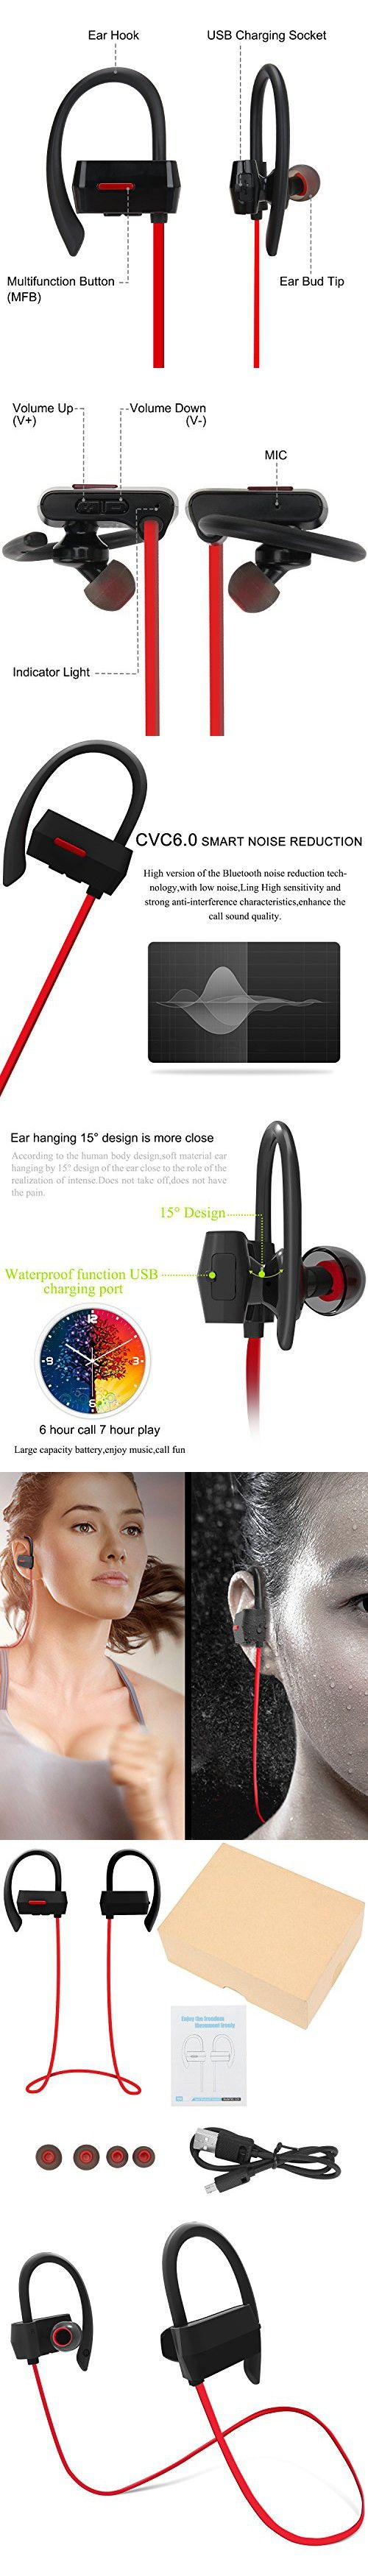 Bluetooth Headphones, Danibos Upgraded Wireless Stereo Headphones Hands-free Bluetooth Headset V4.1 In-Ear Noise Cancelling Sweatproof Sports Earphones for iPhone, Samsung and Android Phones.